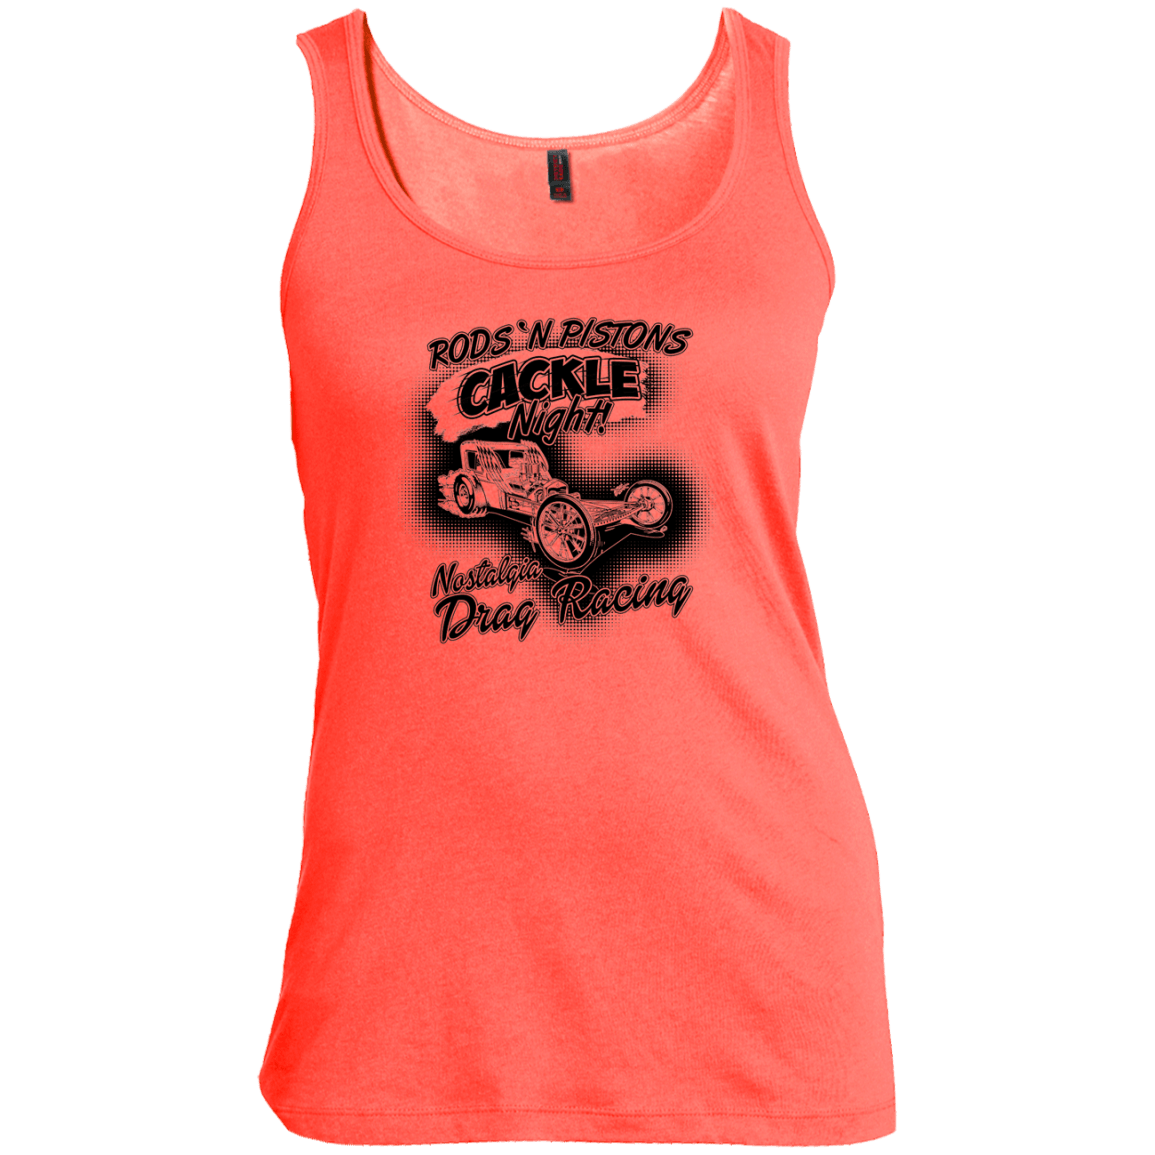 cackle night Women's Scoop Neck Tank Top